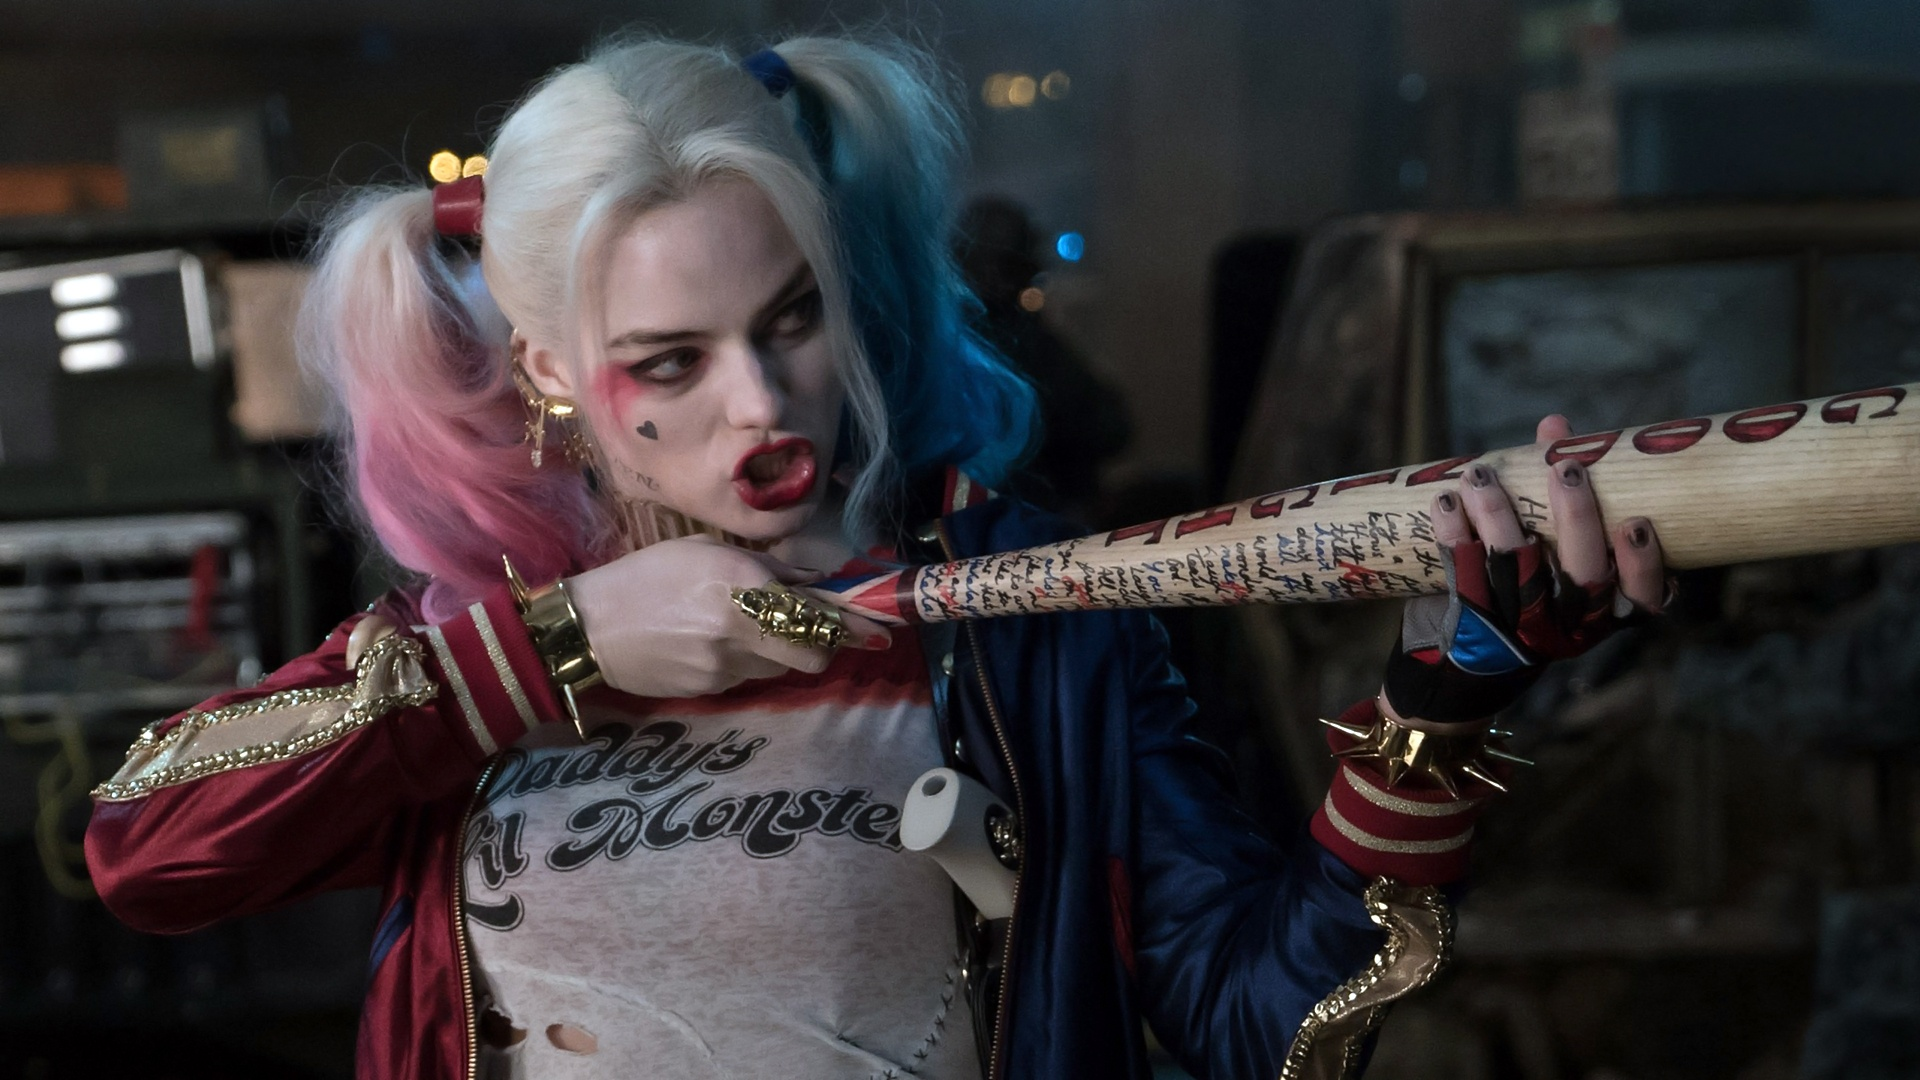 harley_quinn-suicide_squad-movie-margot_robbie-girl-1920x1080